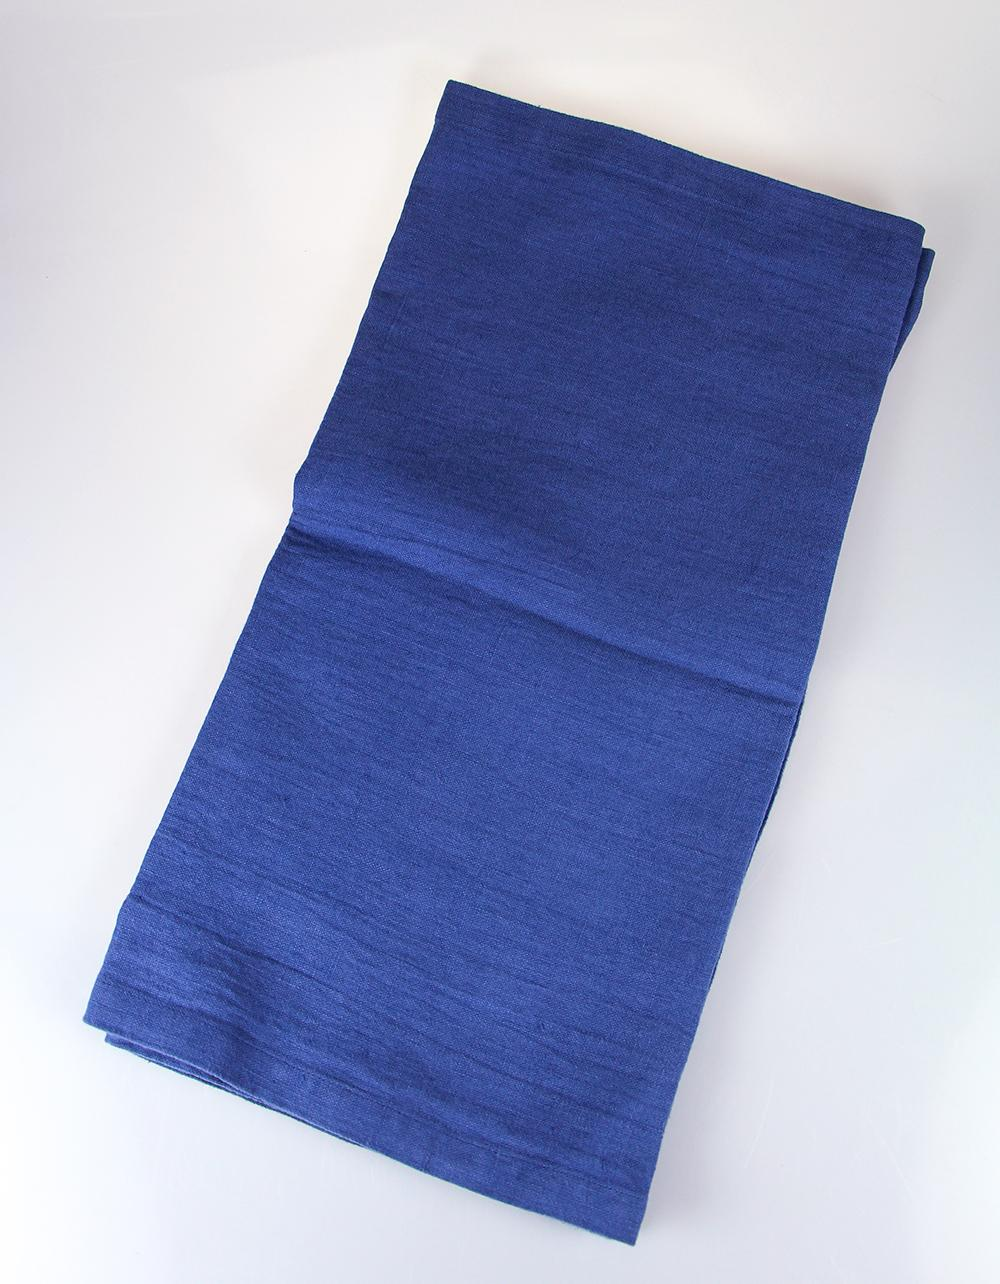 The Essential Ingredient Pure Linen Table Runner - Blue 45cm x 180cm